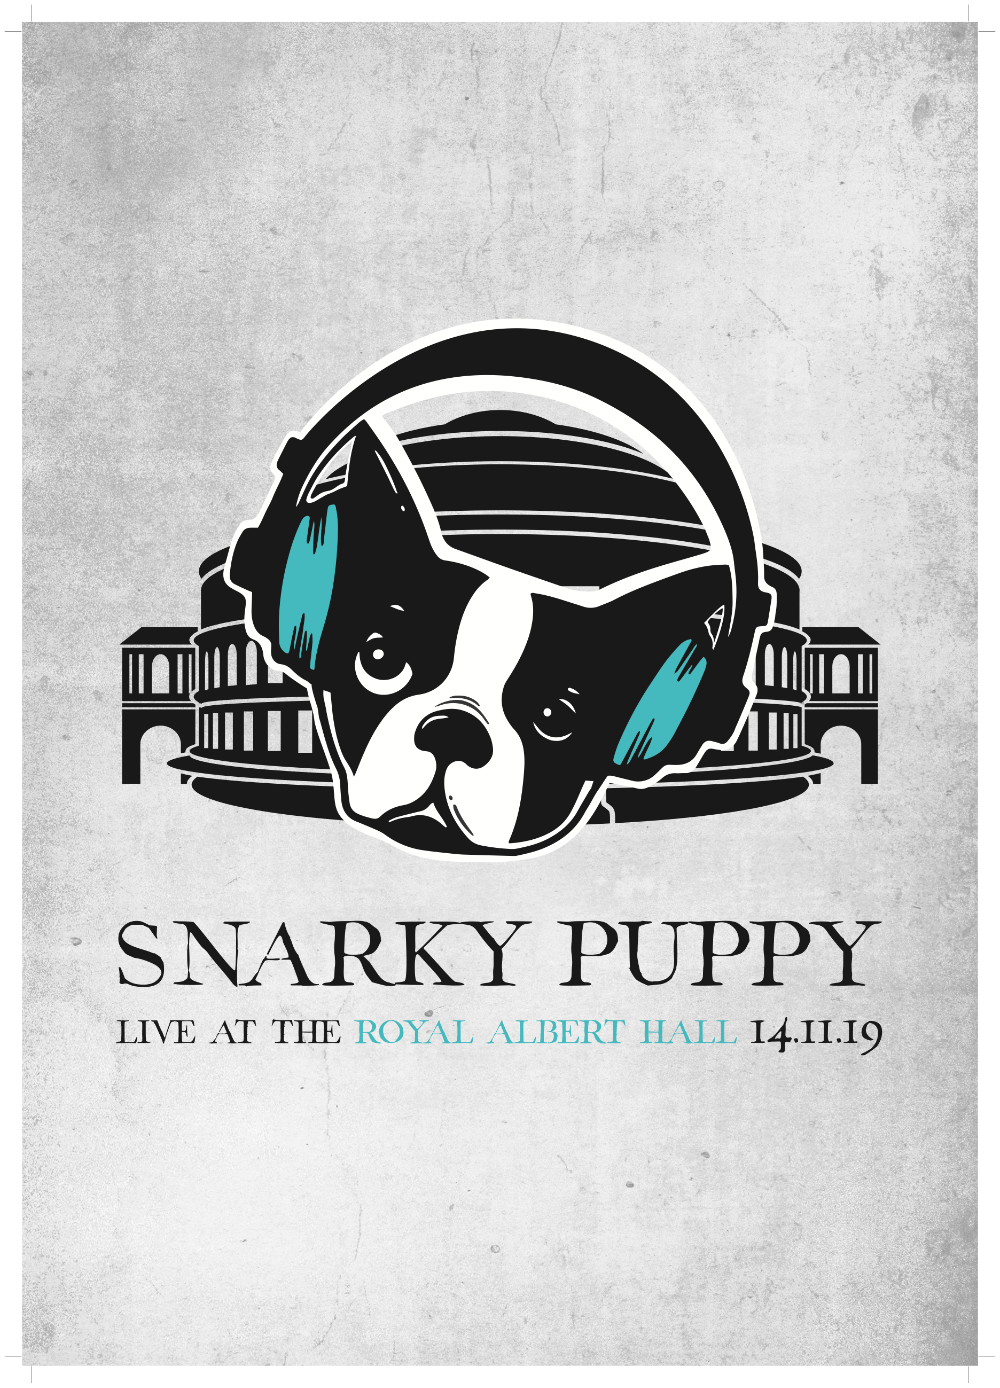 Snarky Puppy: Live At The Royal Albert Hall - A3 Art Print.